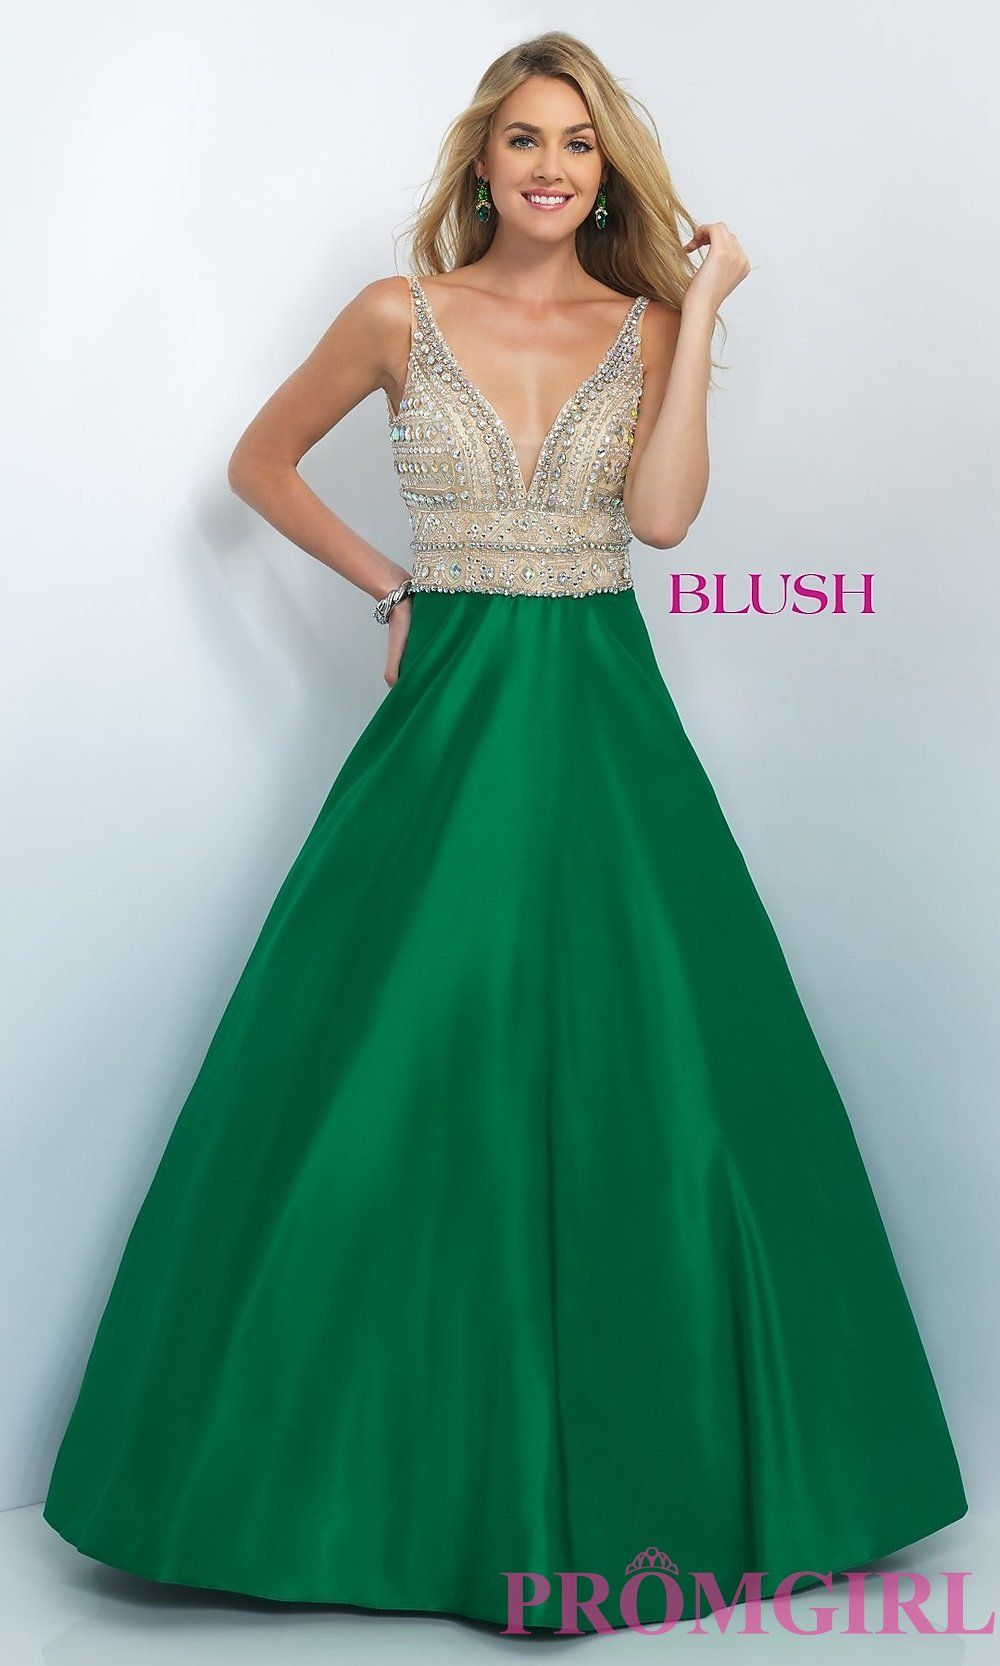 BL-5524 - Long Ball Gown Style V-Neck Prom Dress by Blush ...